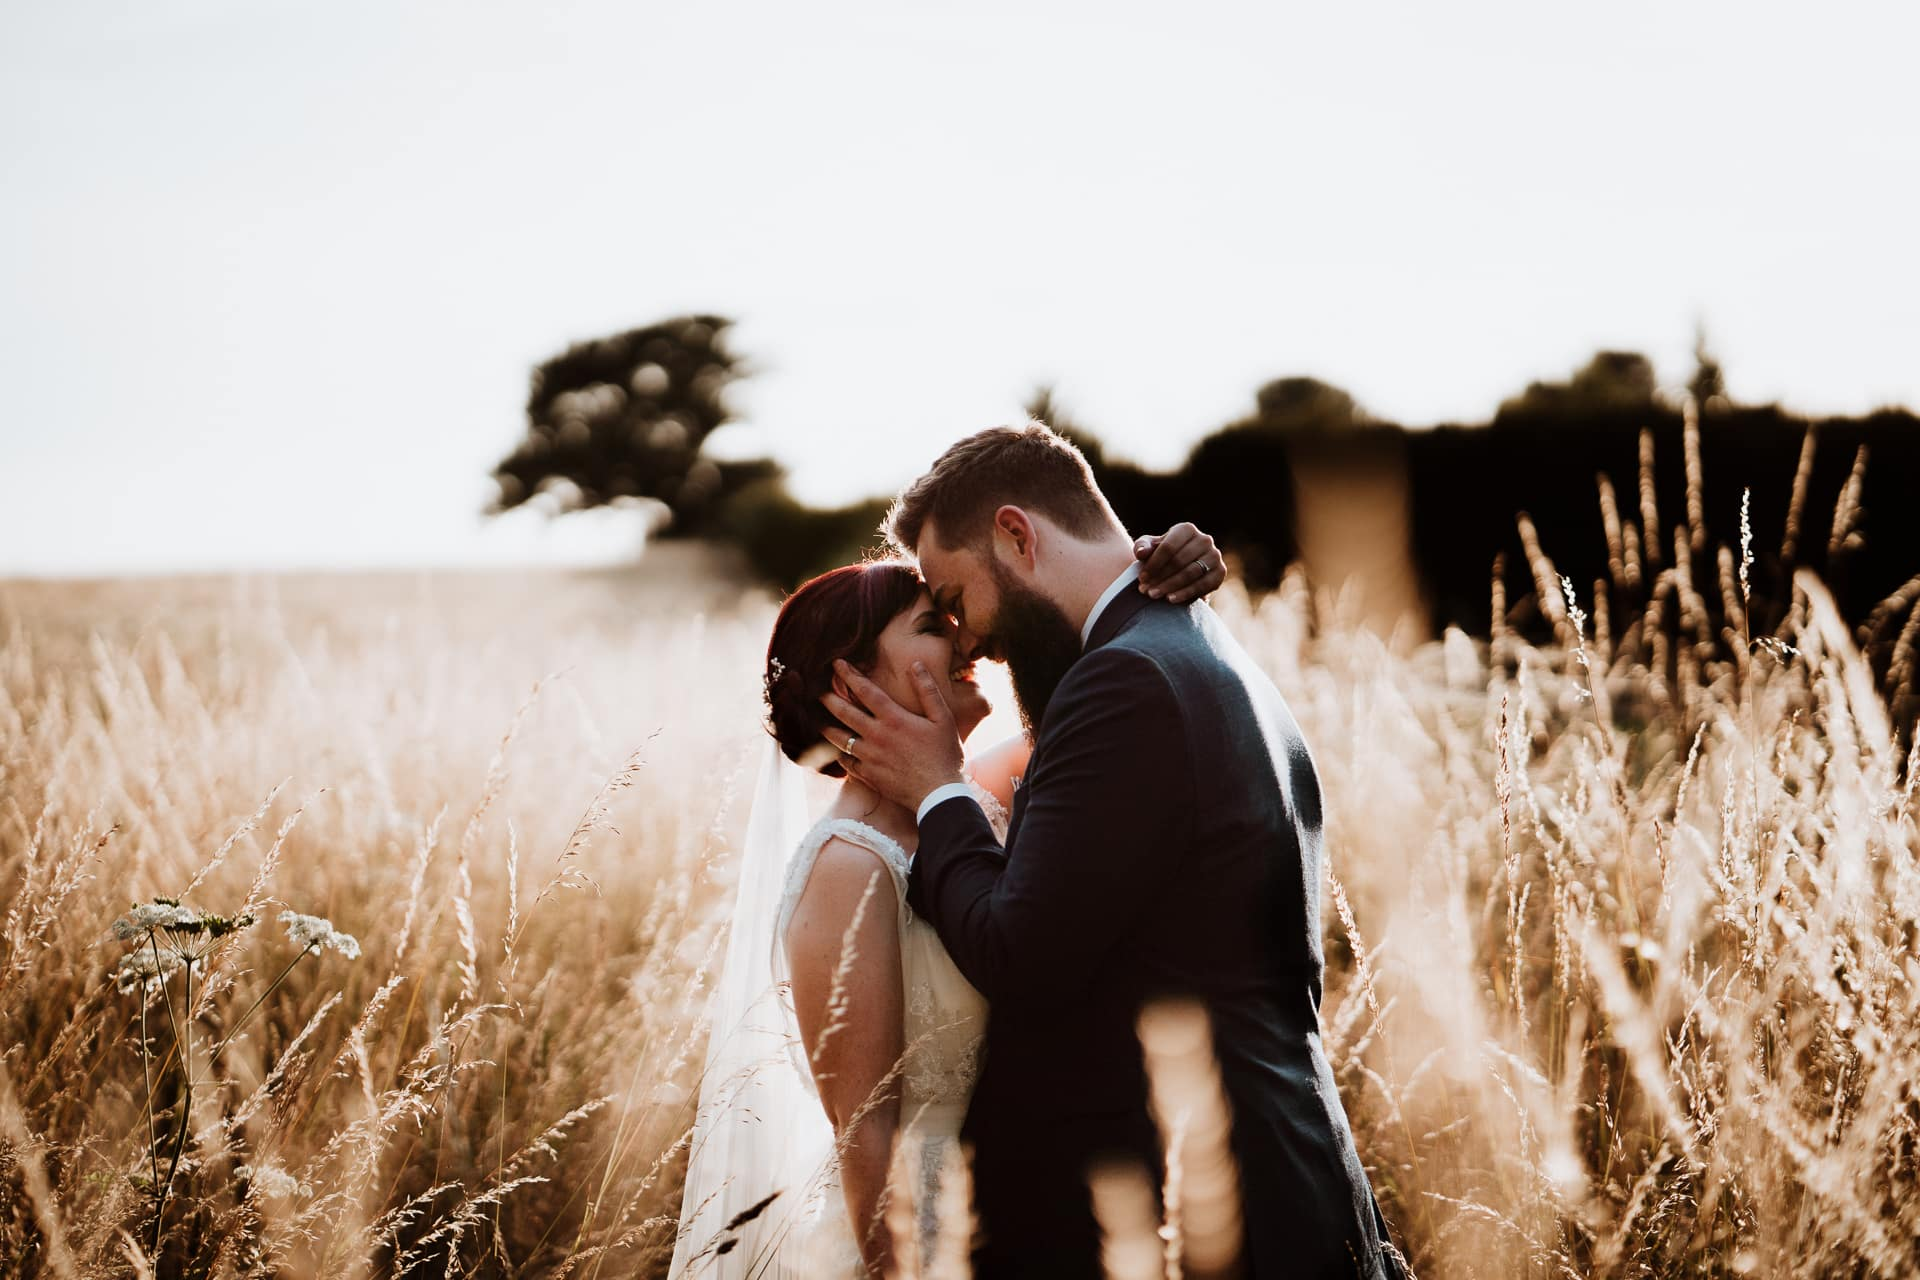 Bride and Groom node to nose and smiling in a field during sunset